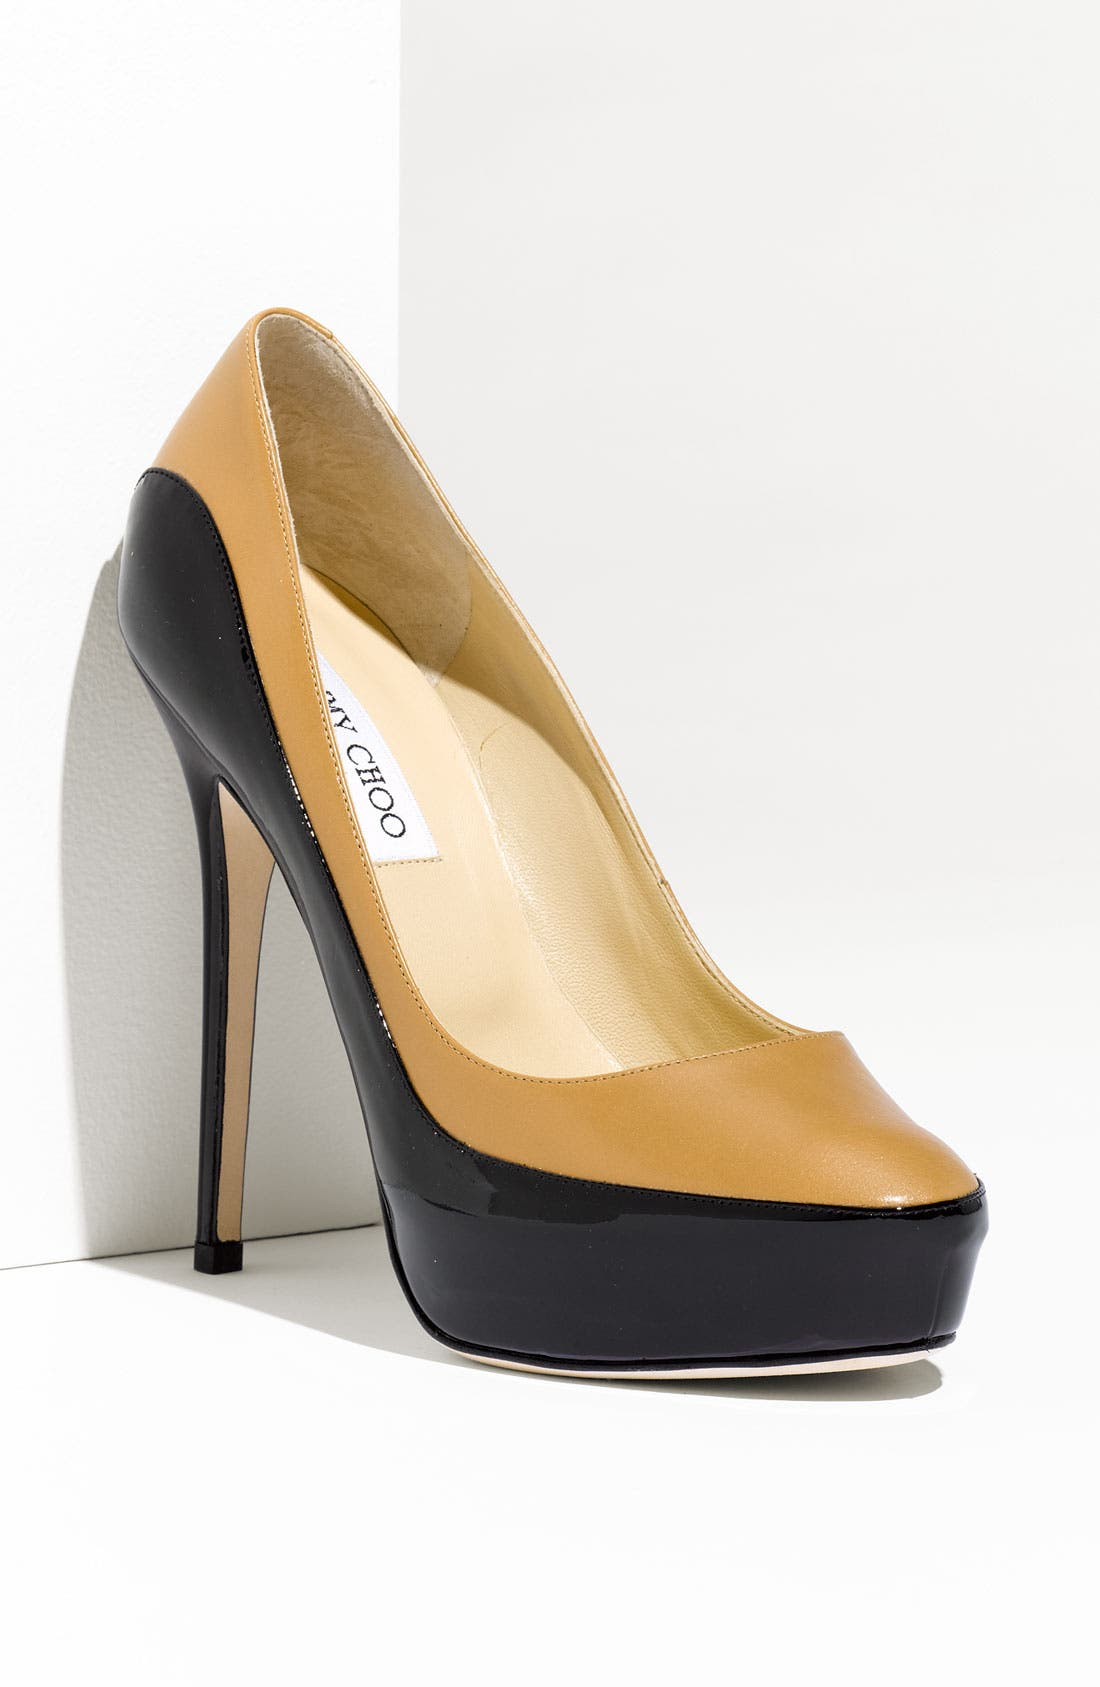 Alternate Image 1 Selected - Jimmy Choo 'Sepia' Two Tone Platform Pump